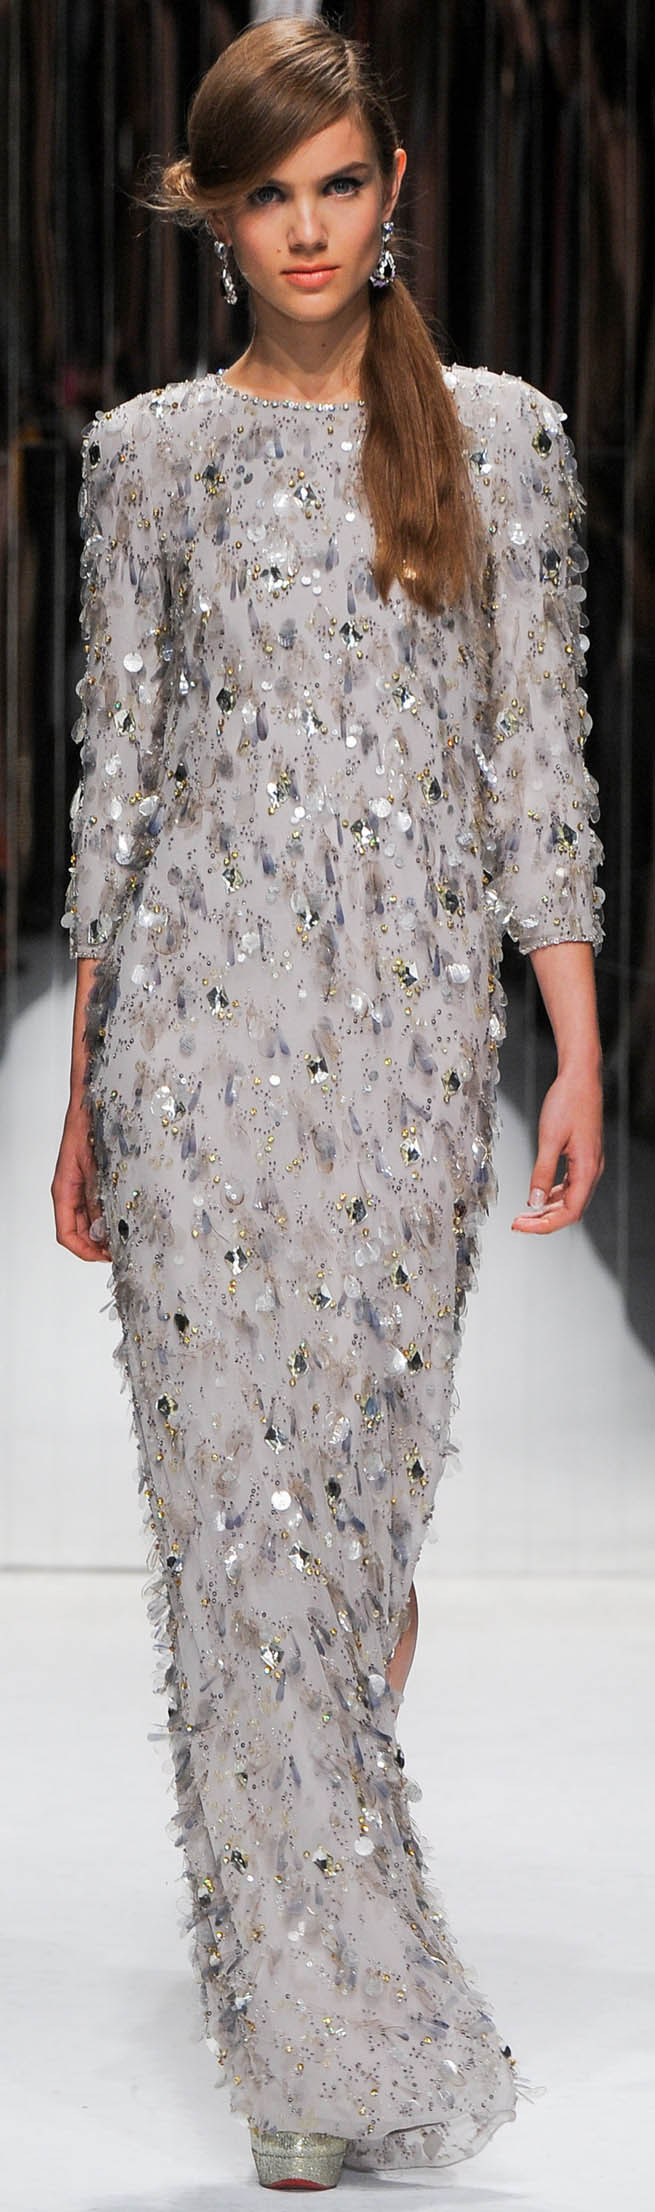 Jenny Packham Spring 2013 - Evening Gowns